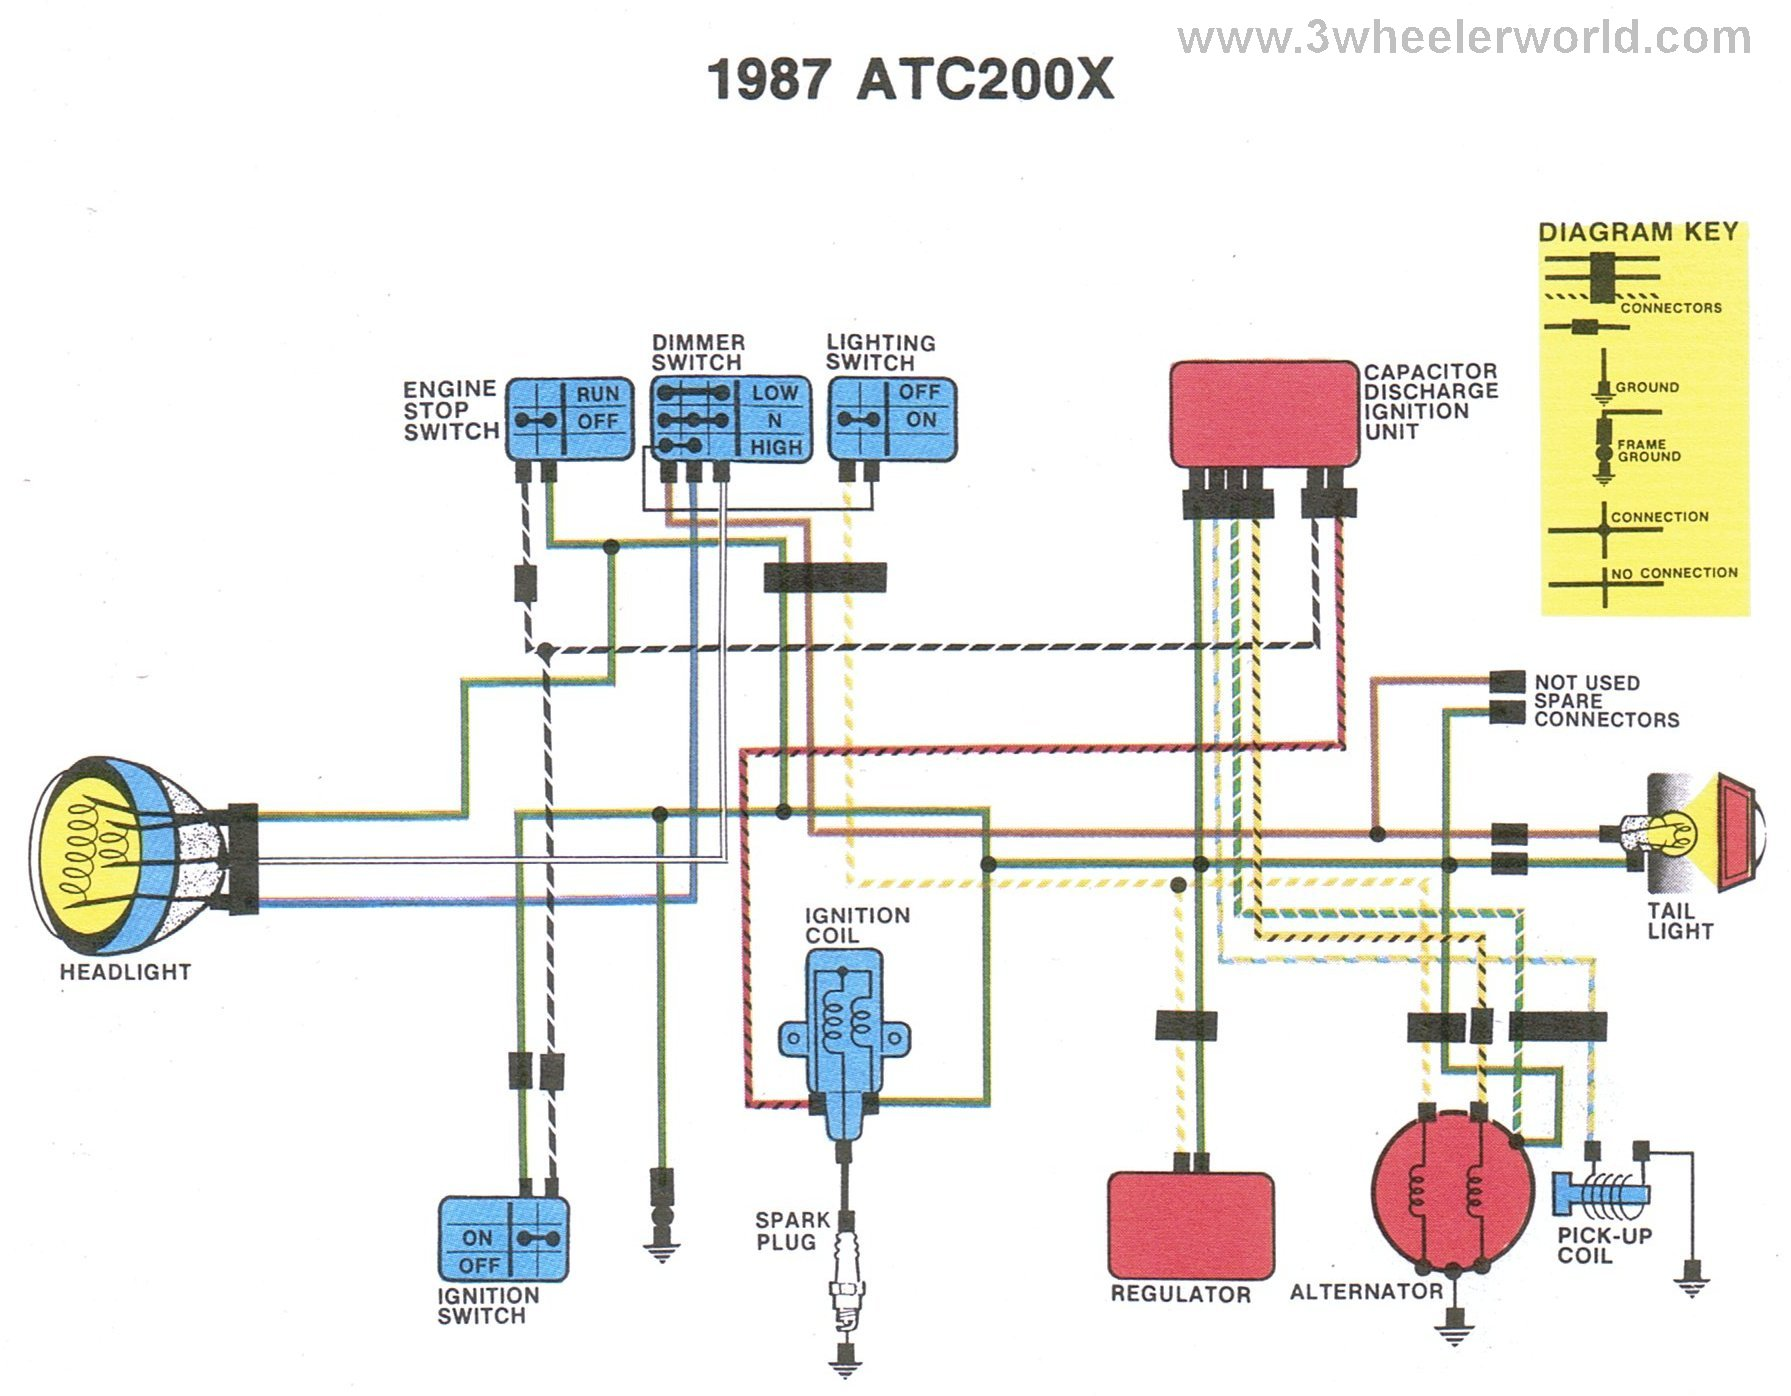 83 atc 200e wireing harness   27 wiring diagram images